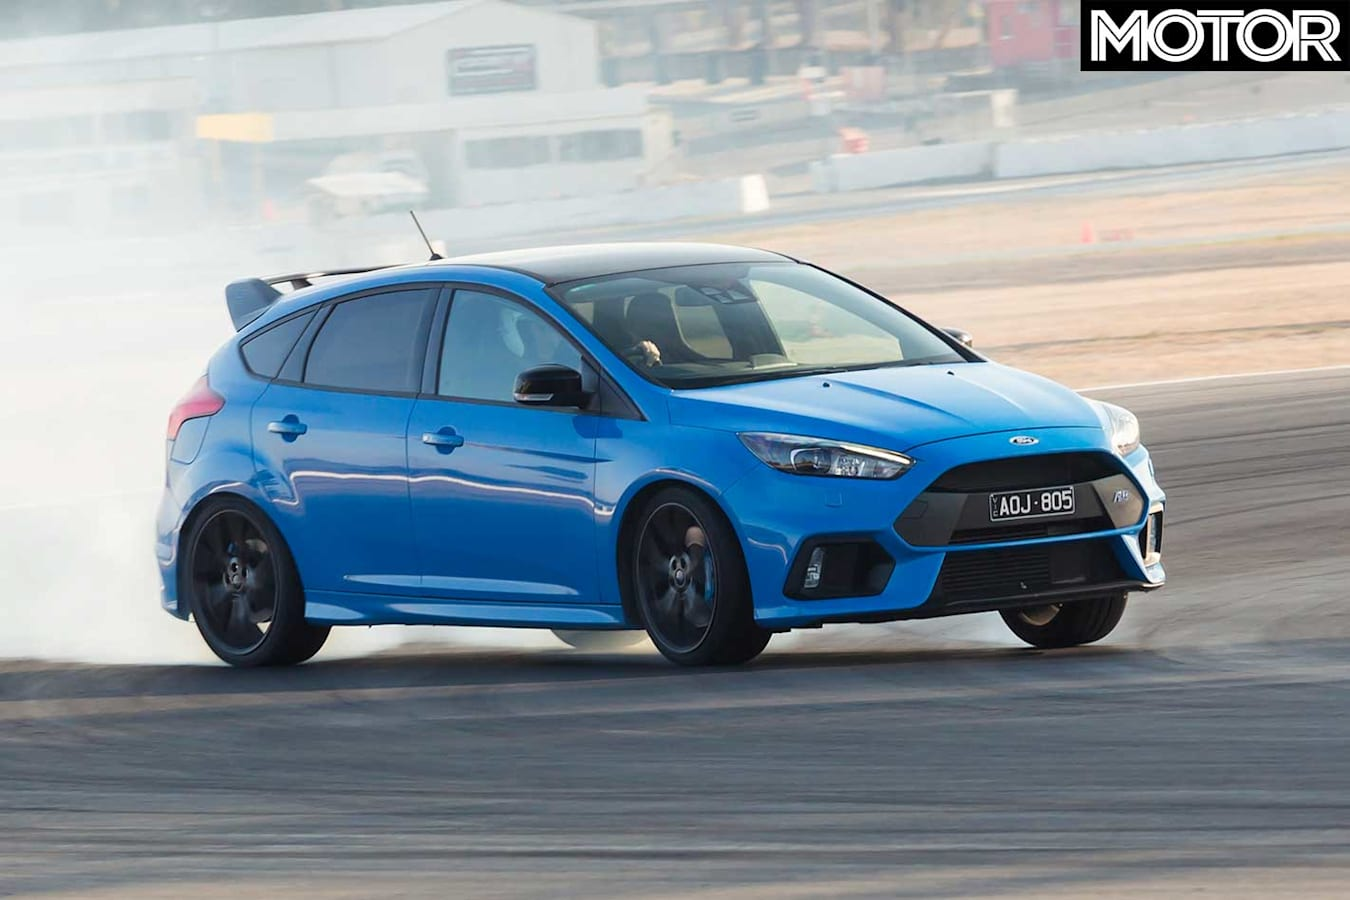 2018 Ford Focus RS Limited Edition Drift Mode Jpg